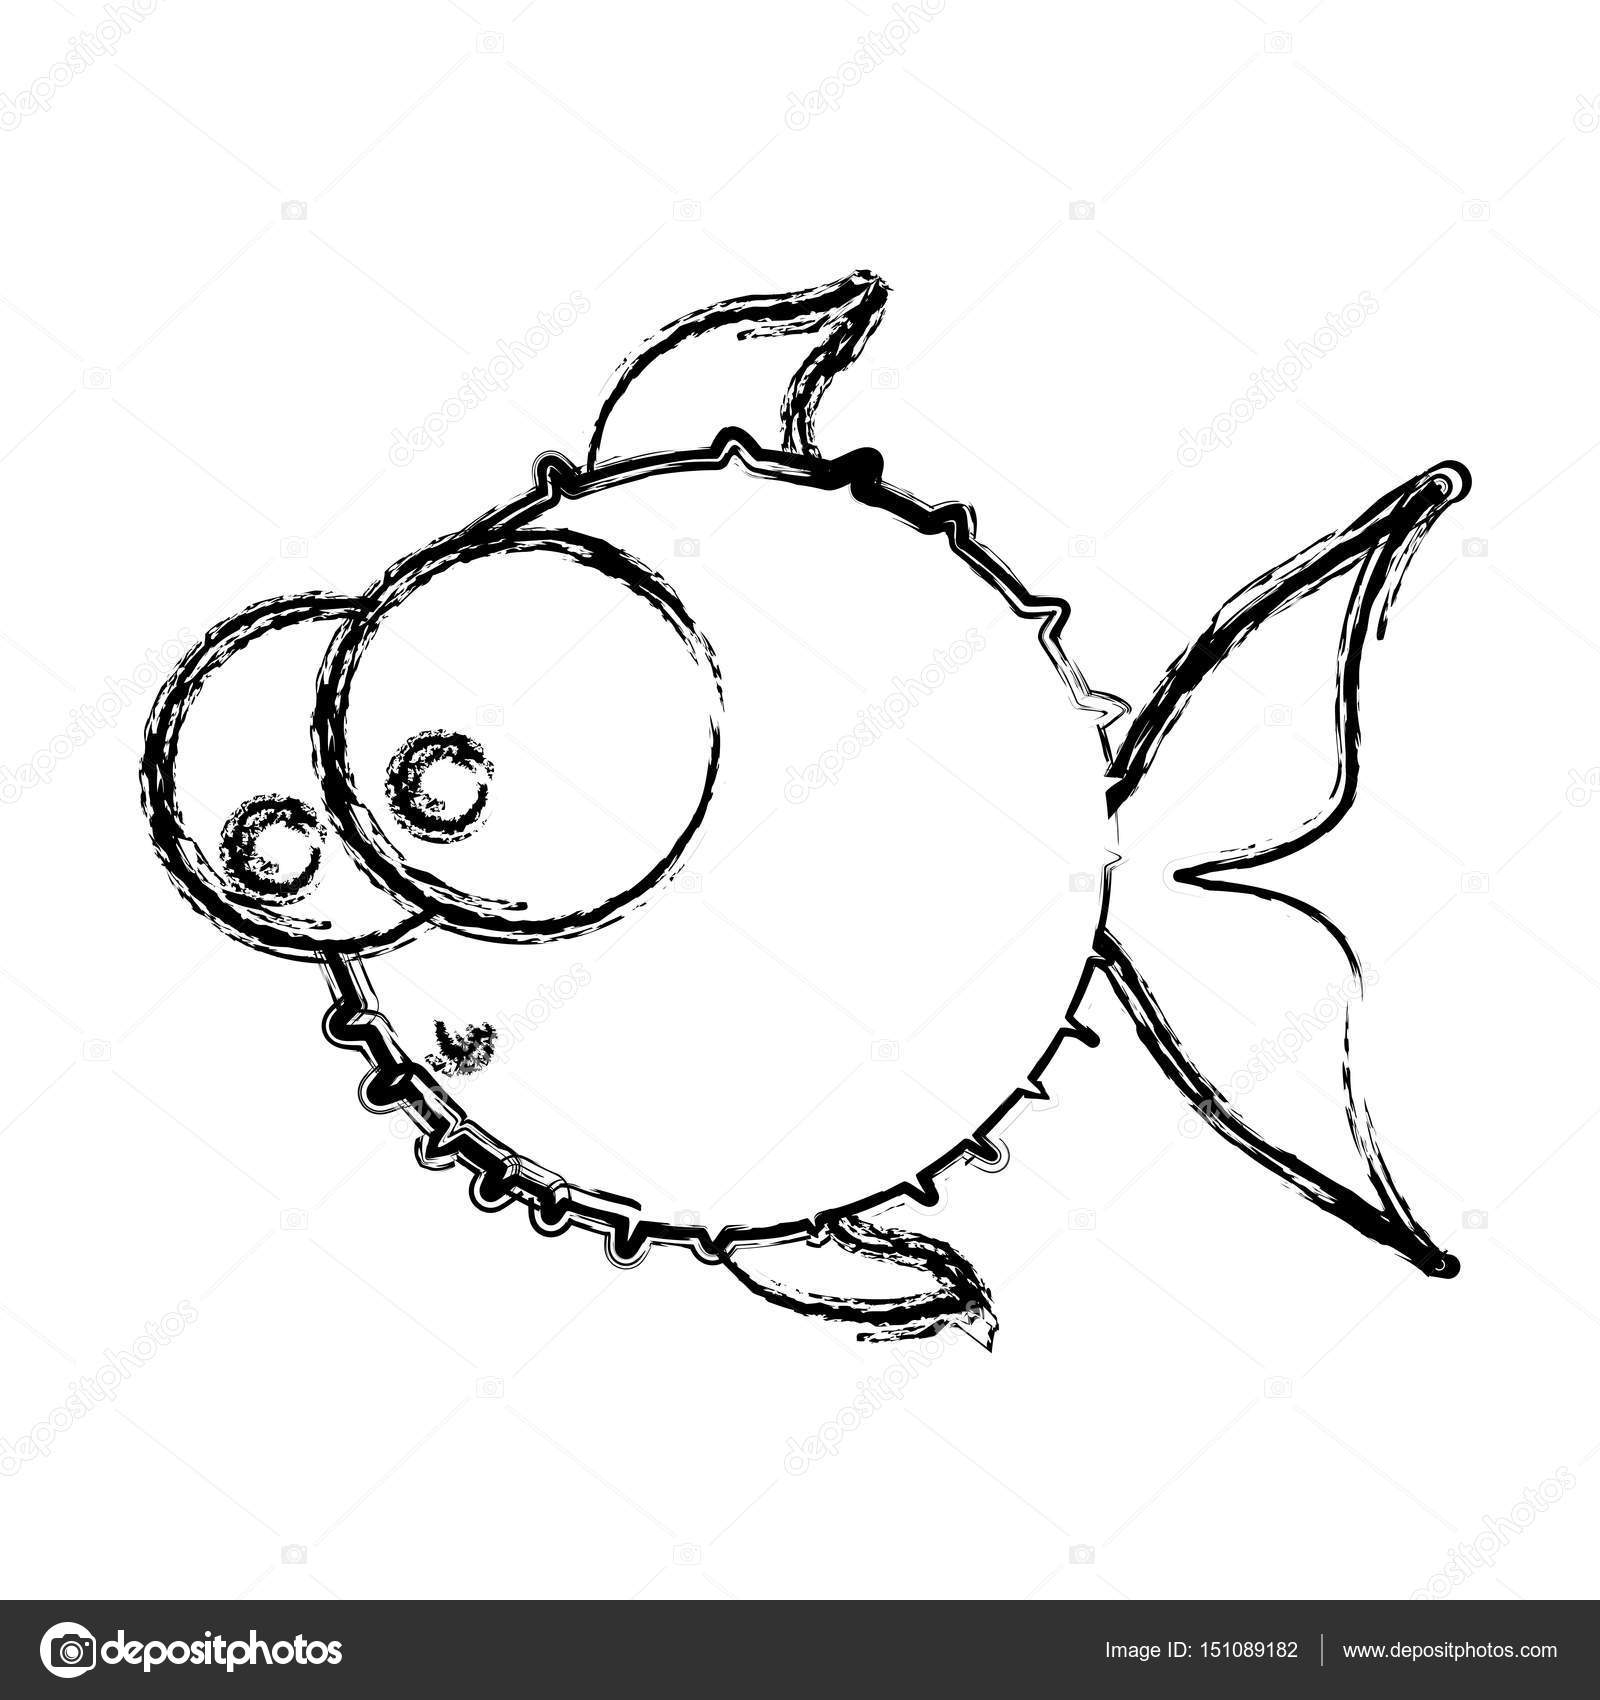 Monochrome Sketch Of Blowfish With Big Eyes Stock Vector